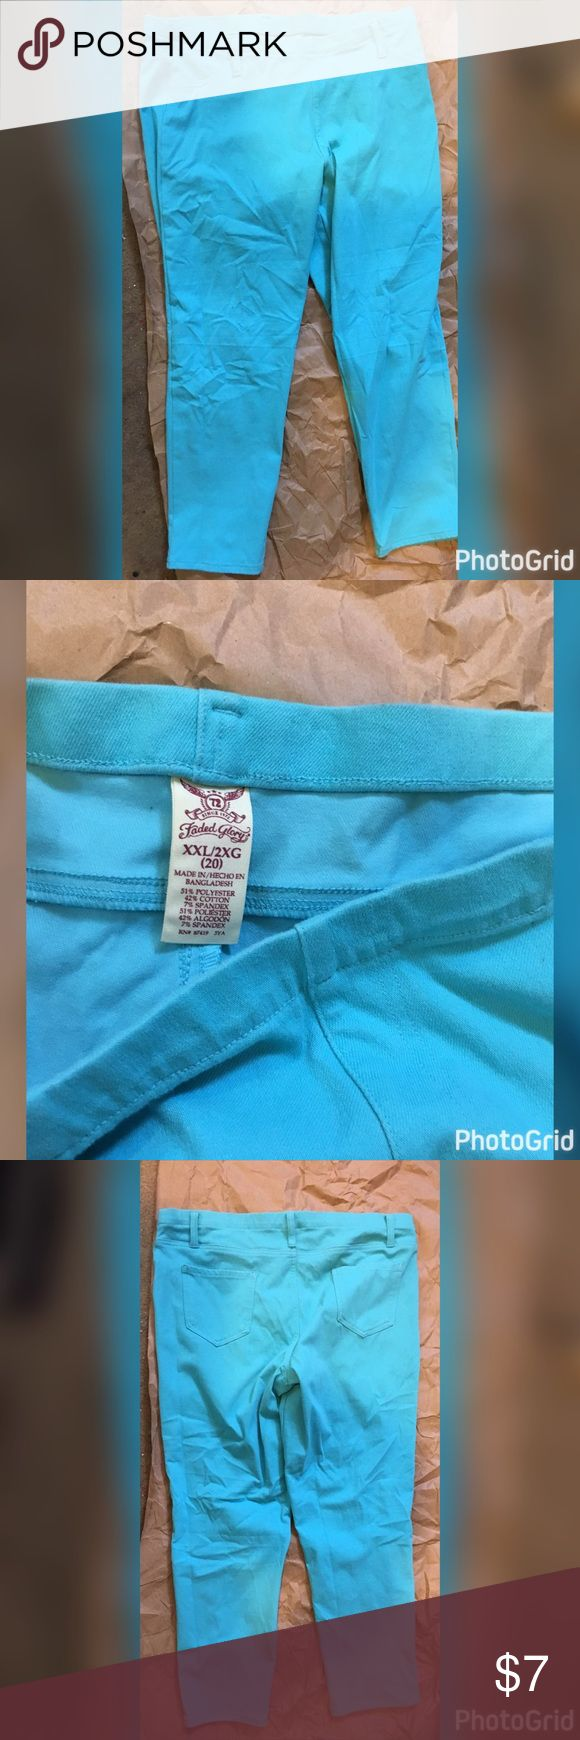 Faded glory bright blue jeggings size 20/ XXL Worn few times purchased from walmart stretchy real back pockets Faded Glory Pants